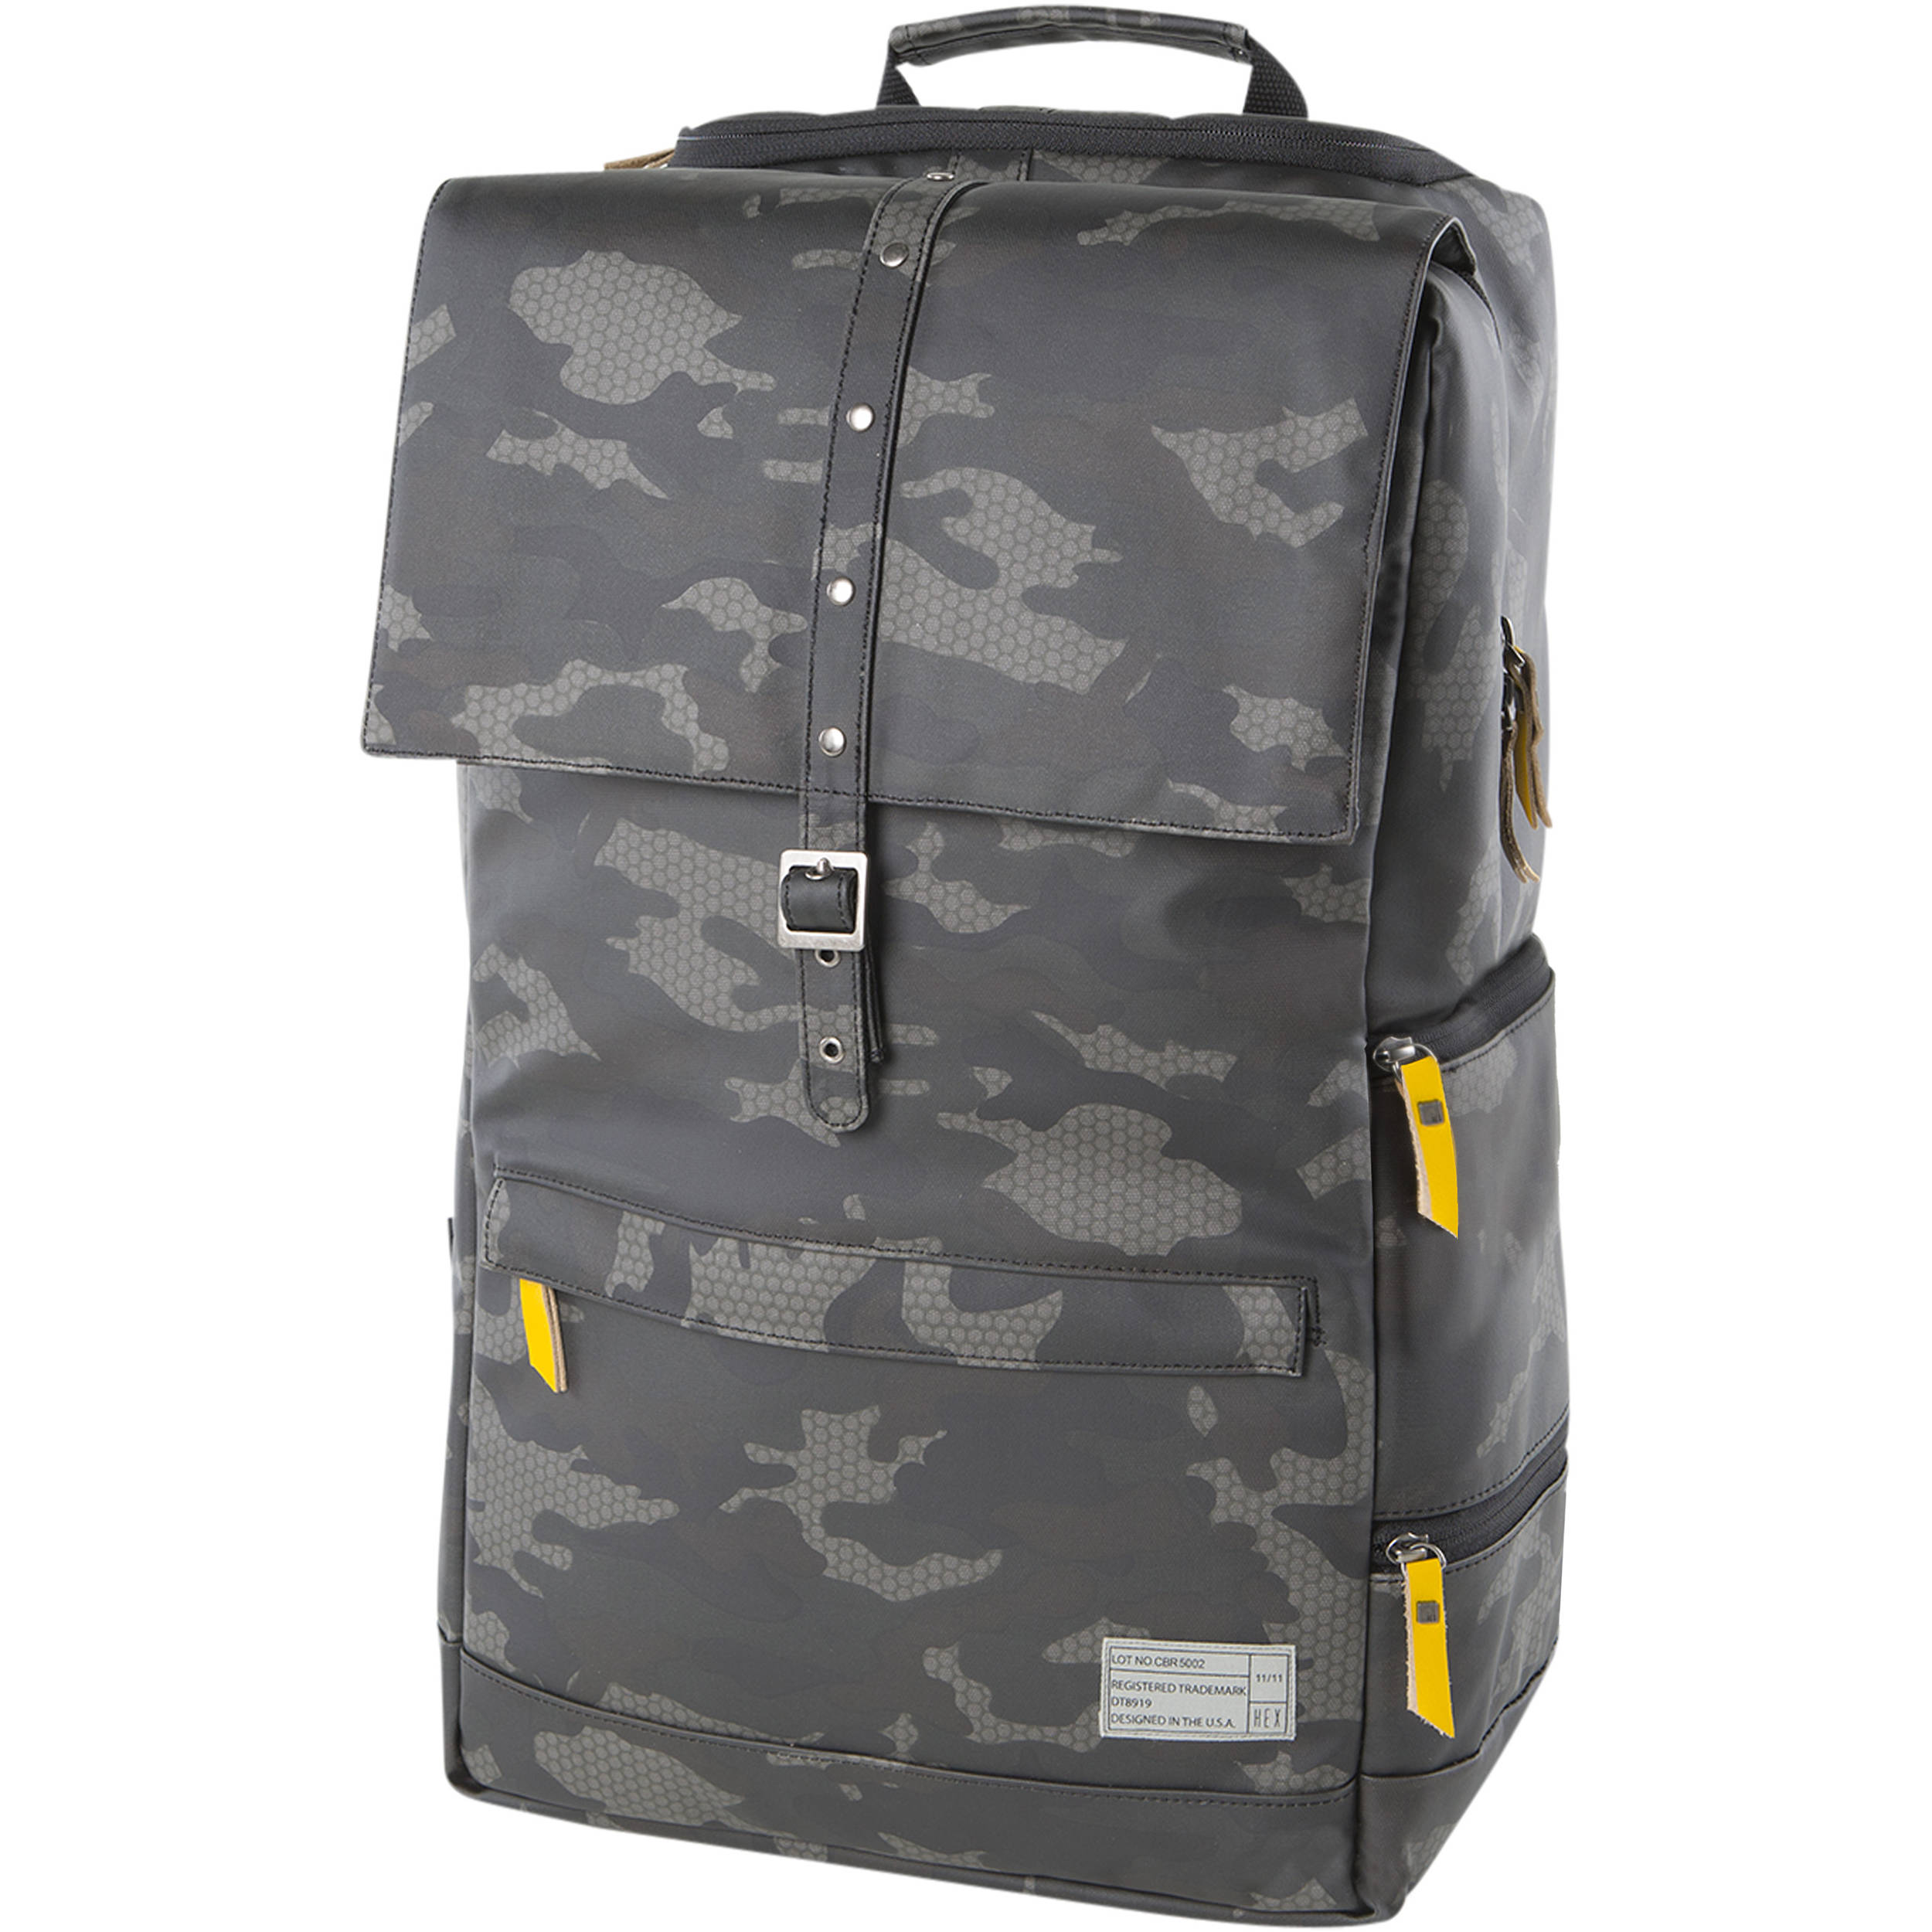 Hex DSLR Backpack (Camouflage) HX1885 - CAMO B&H Photo Video